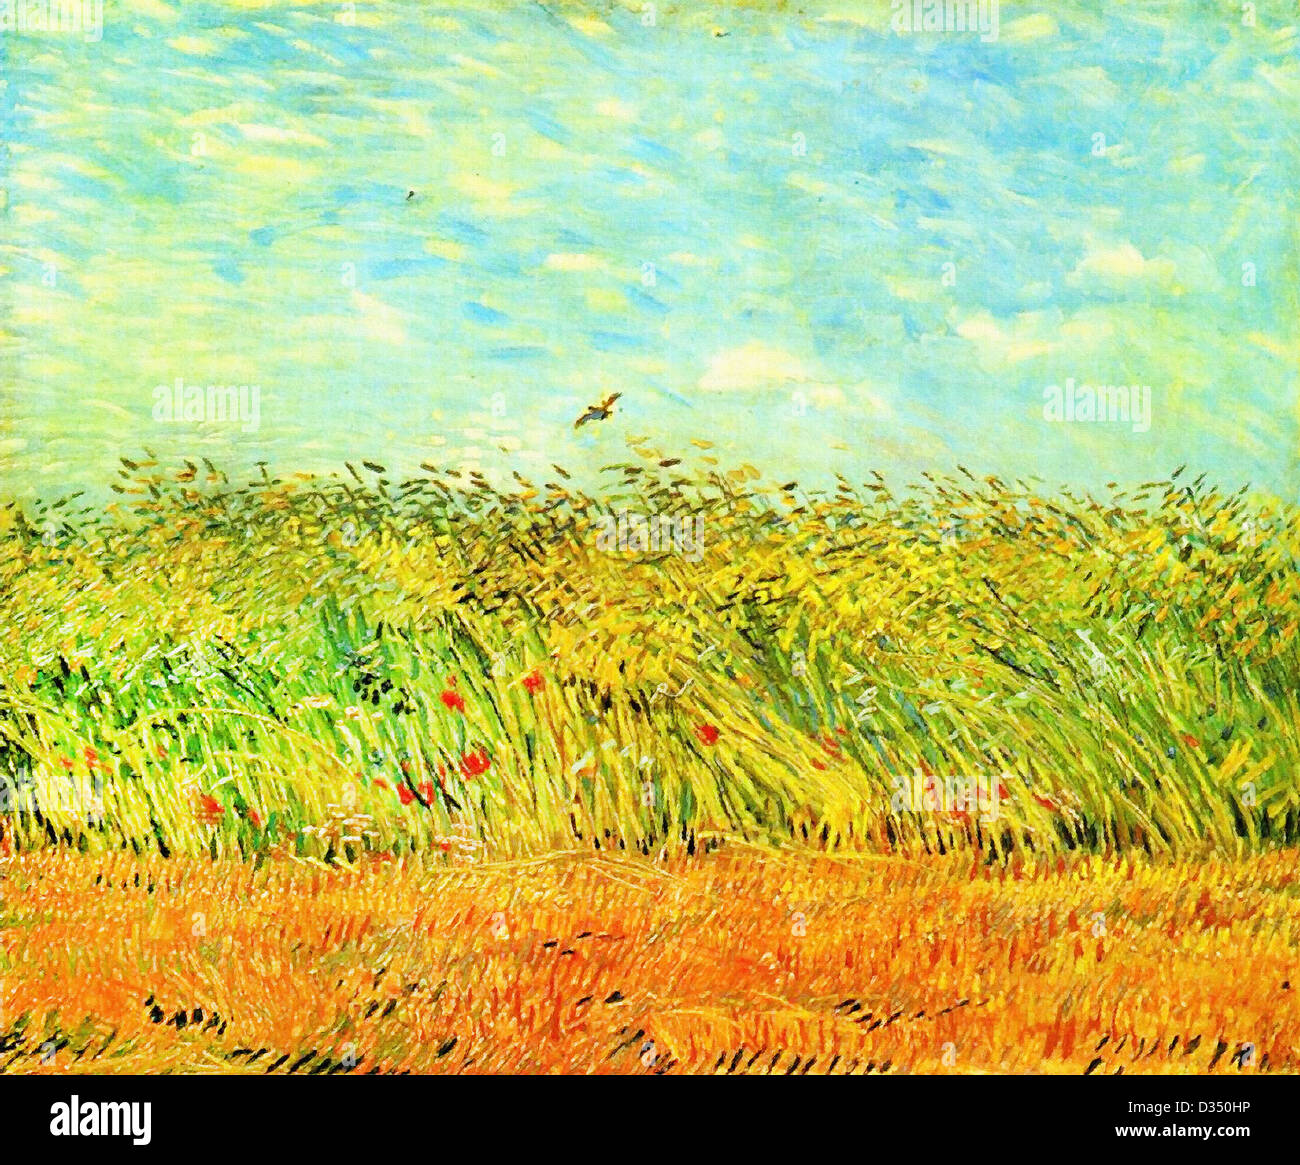 Vincent van Gogh, Wheat Field with a Lark. 1887. Post-Impressionism. Oil on canvas. Place of Creation: Paris, France. - Stock Image